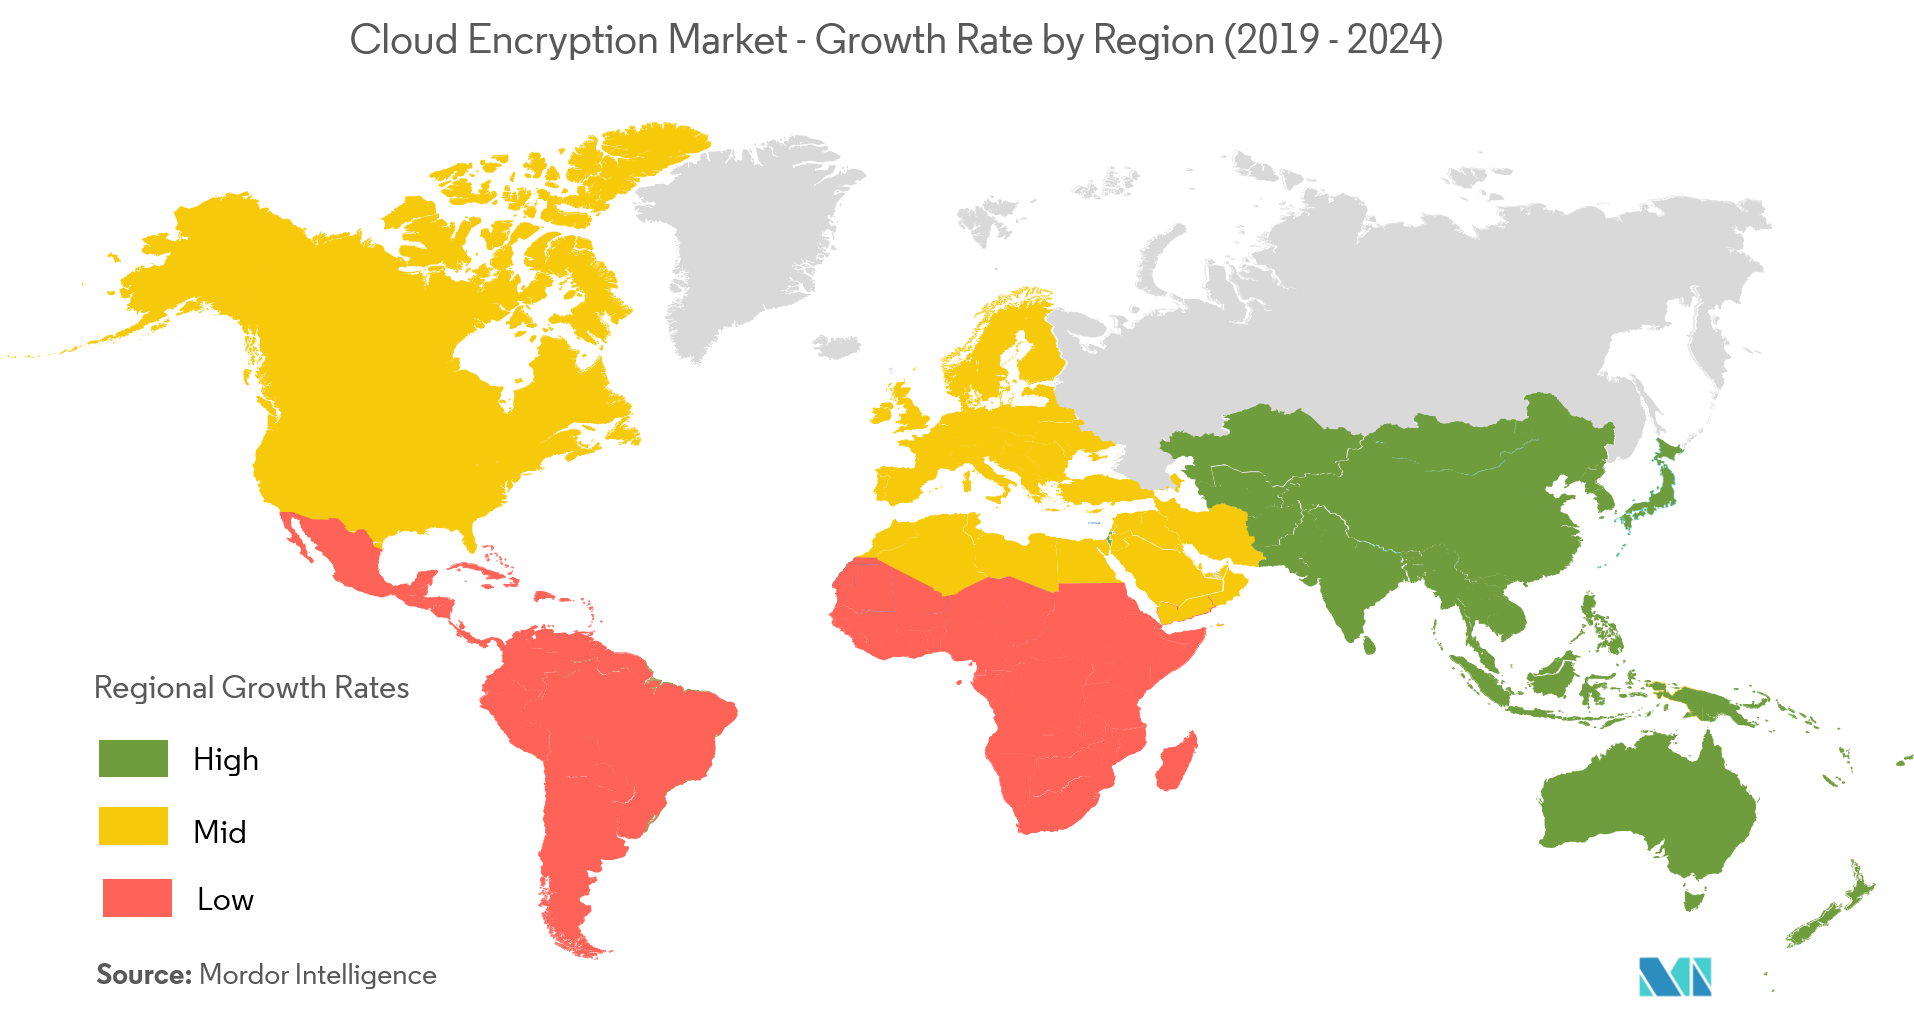 cloud encryption securing cloud for protecting sensitive information industry